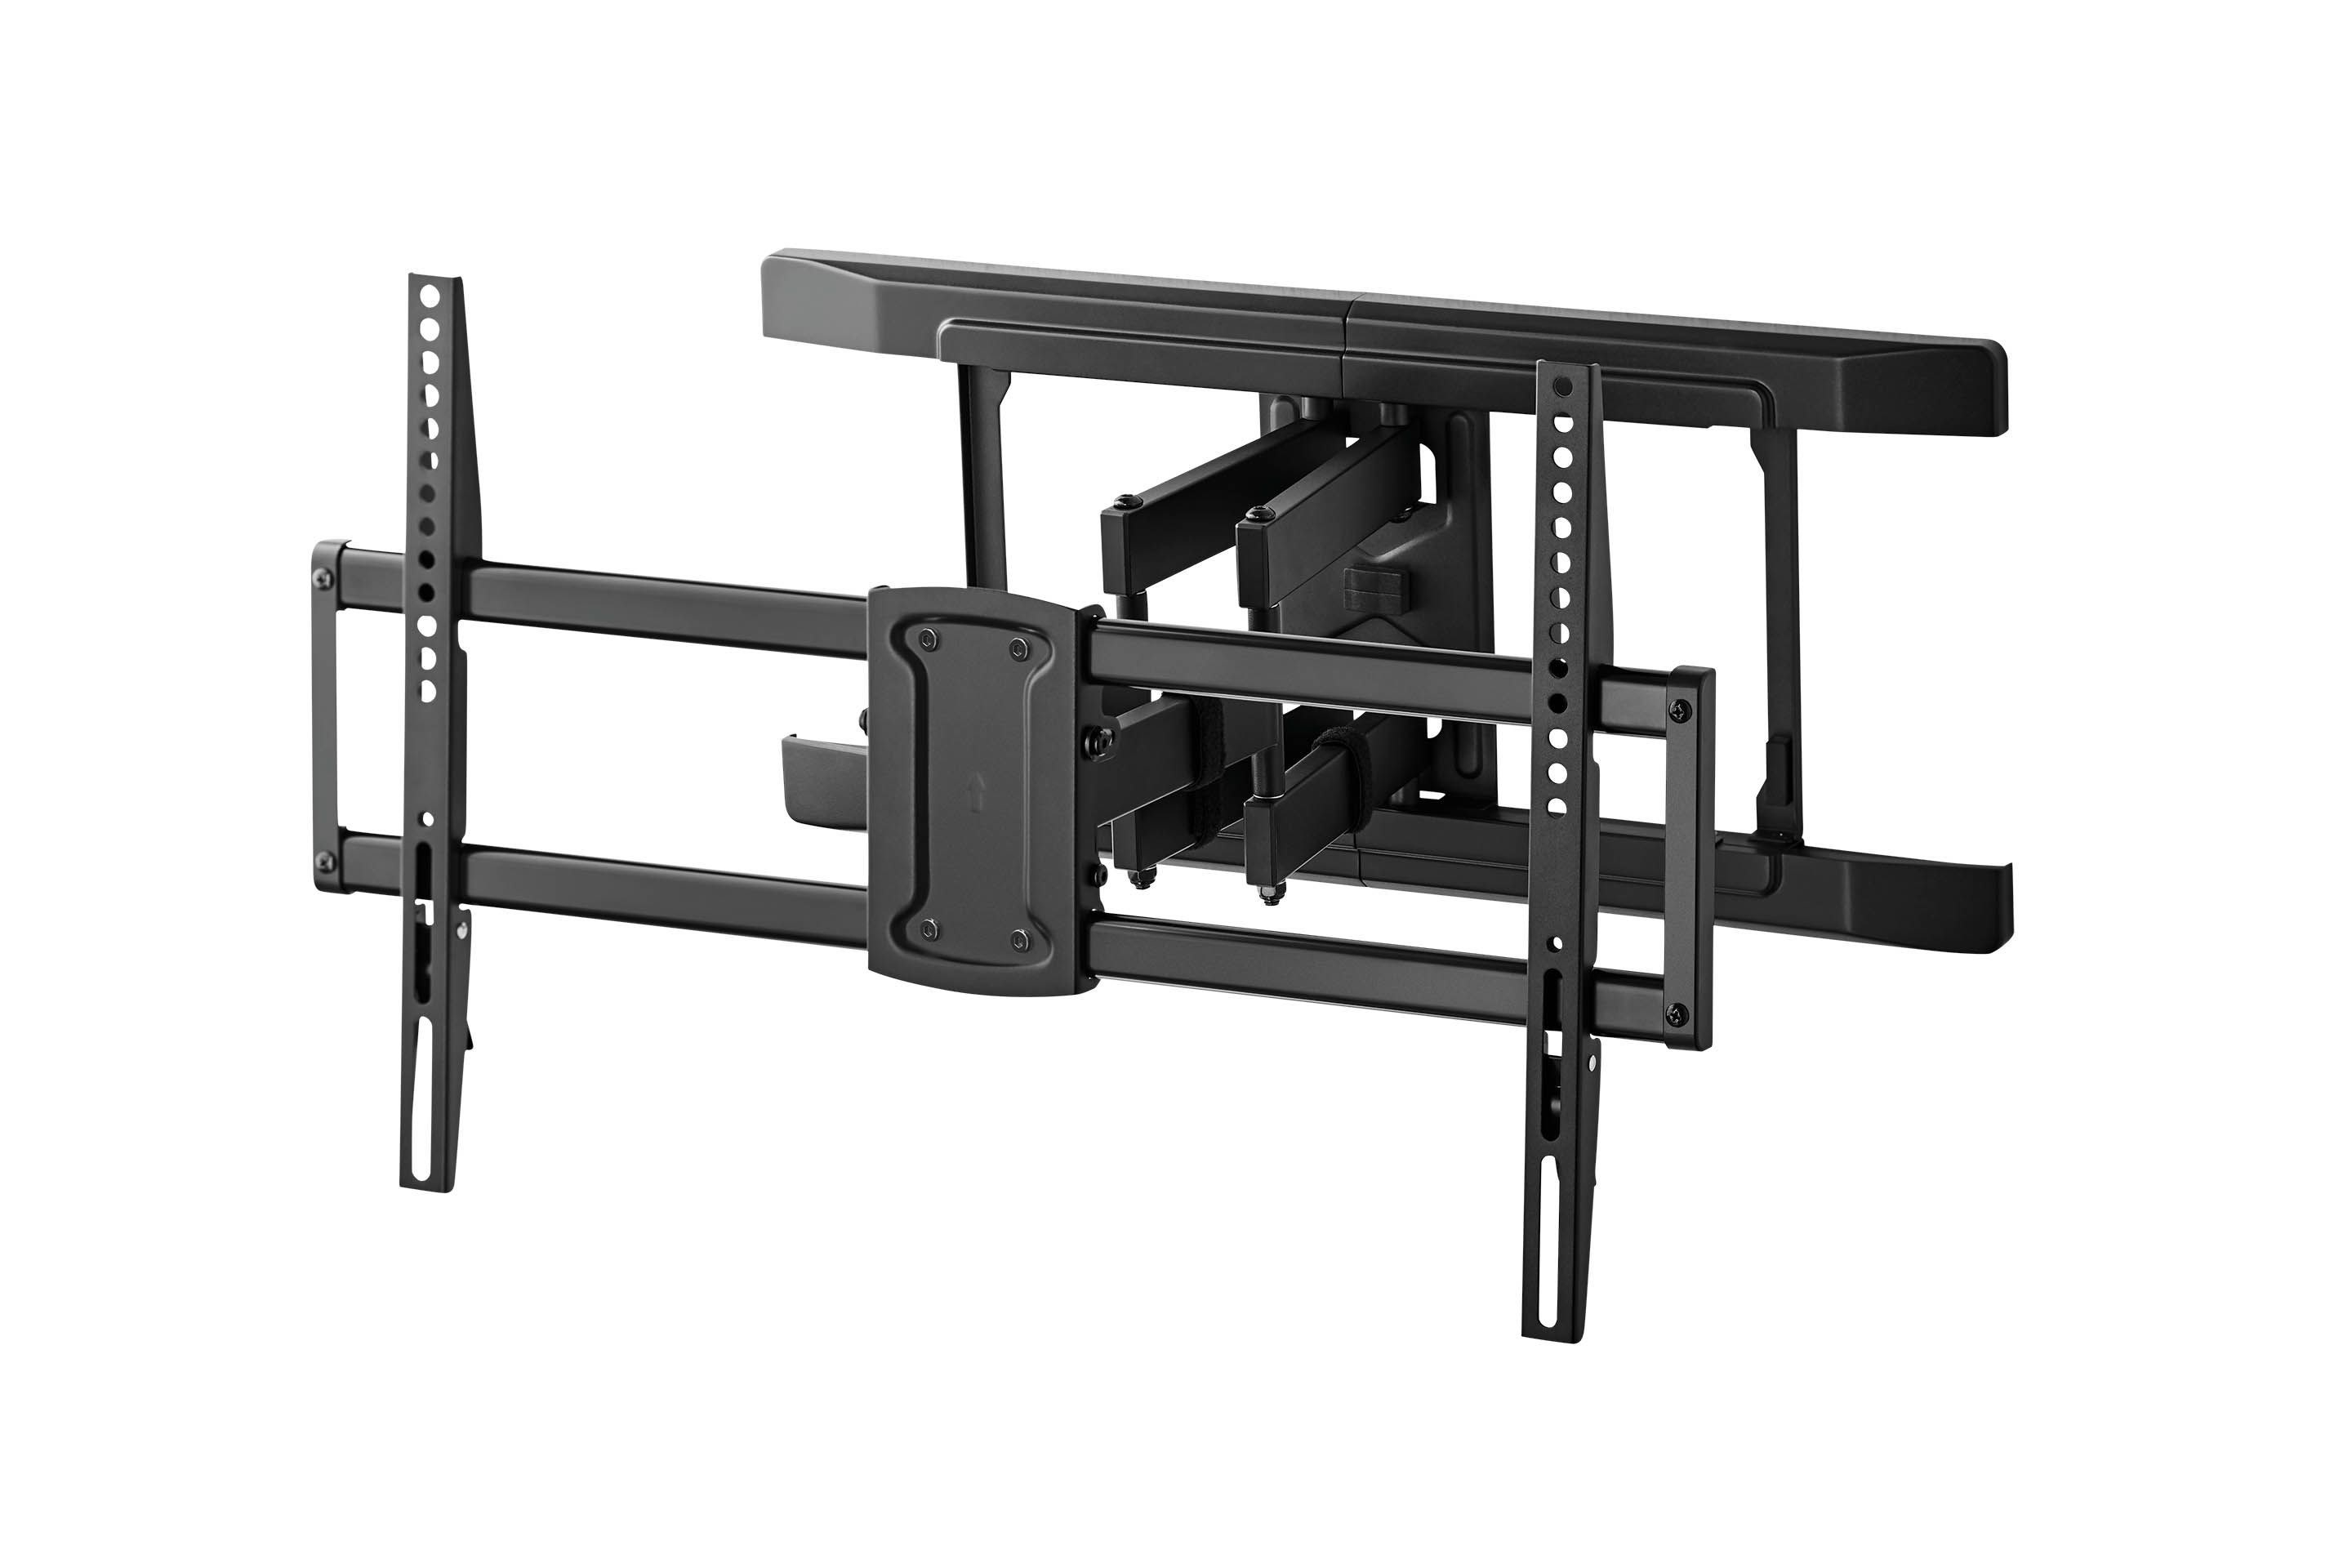 black wall mount for a television